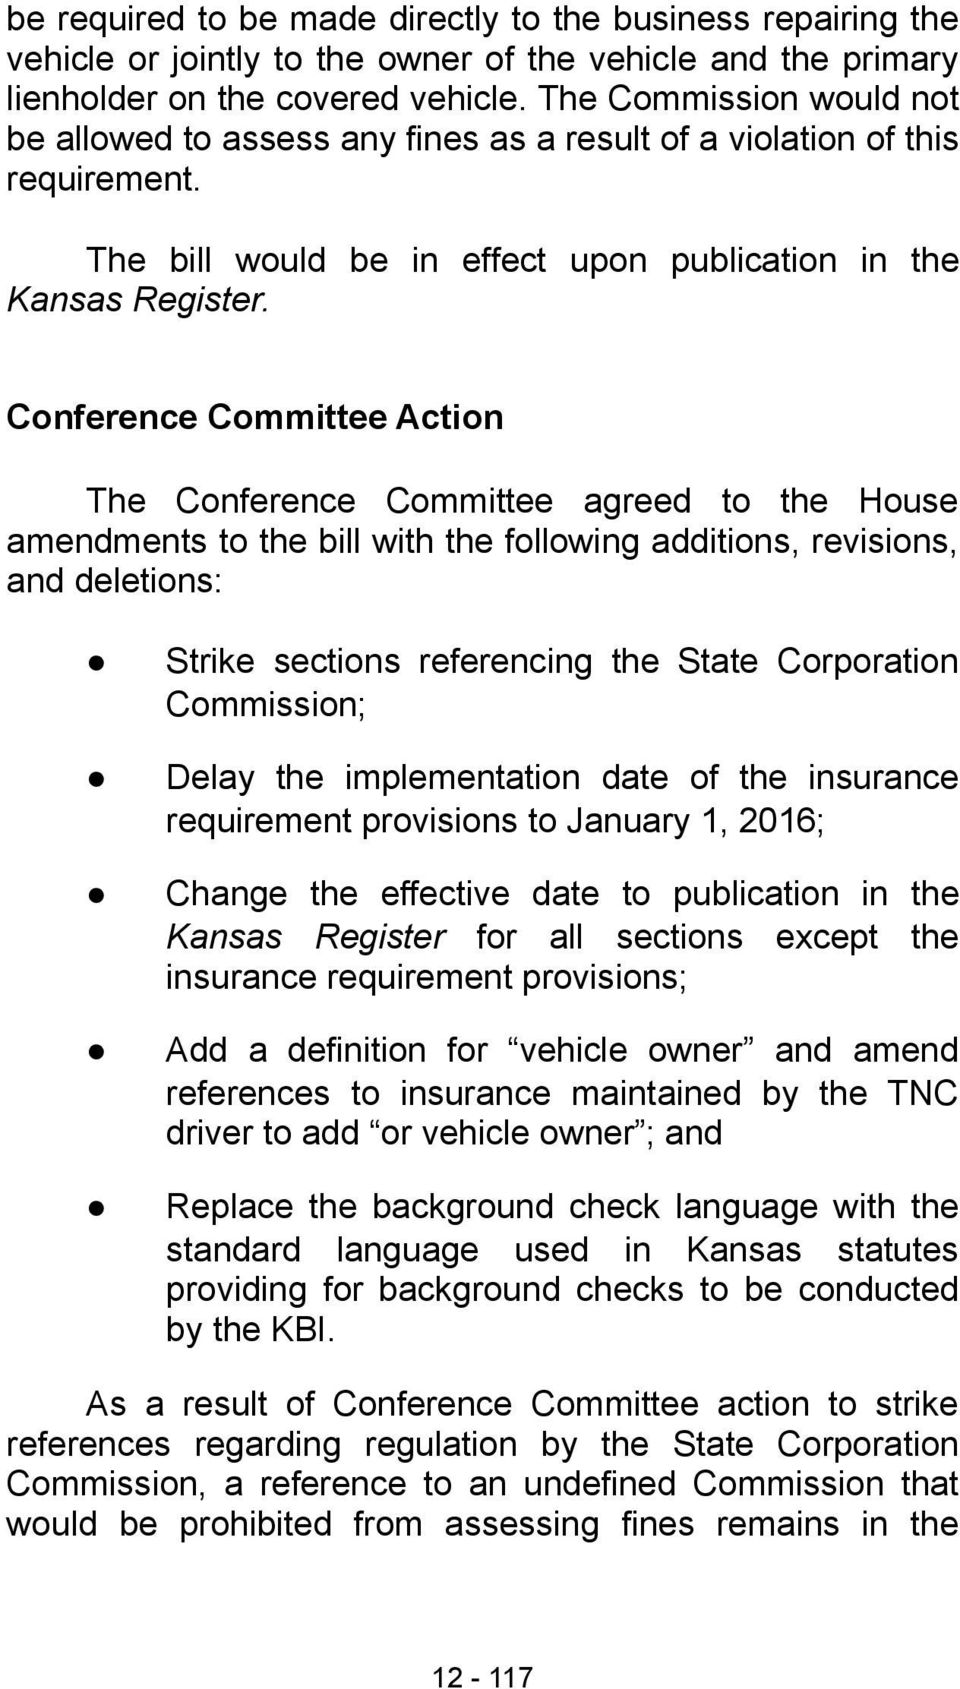 Conference Committee Action The Conference Committee agreed to the House amendments to the bill with the following additions, revisions, and deletions: Strike sections referencing the State